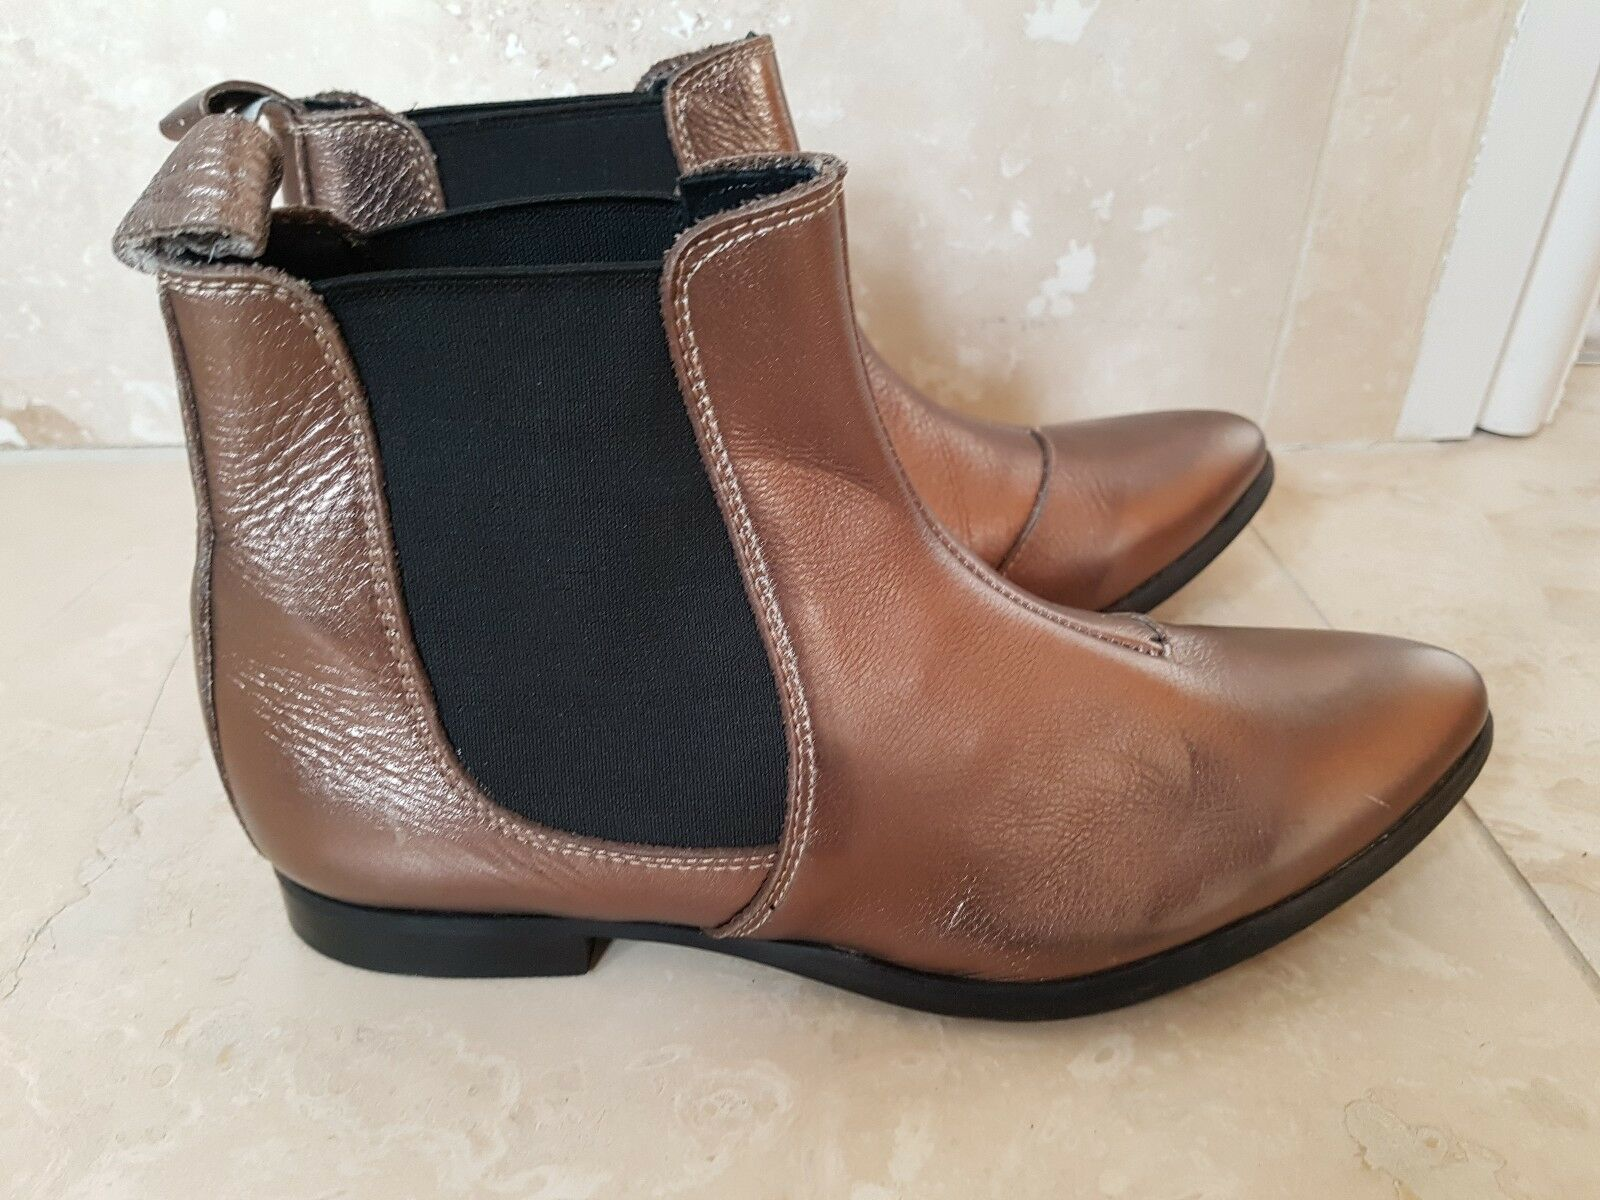 Label Leather Lab Leather Label Ankle Boots size 3 e5feaf